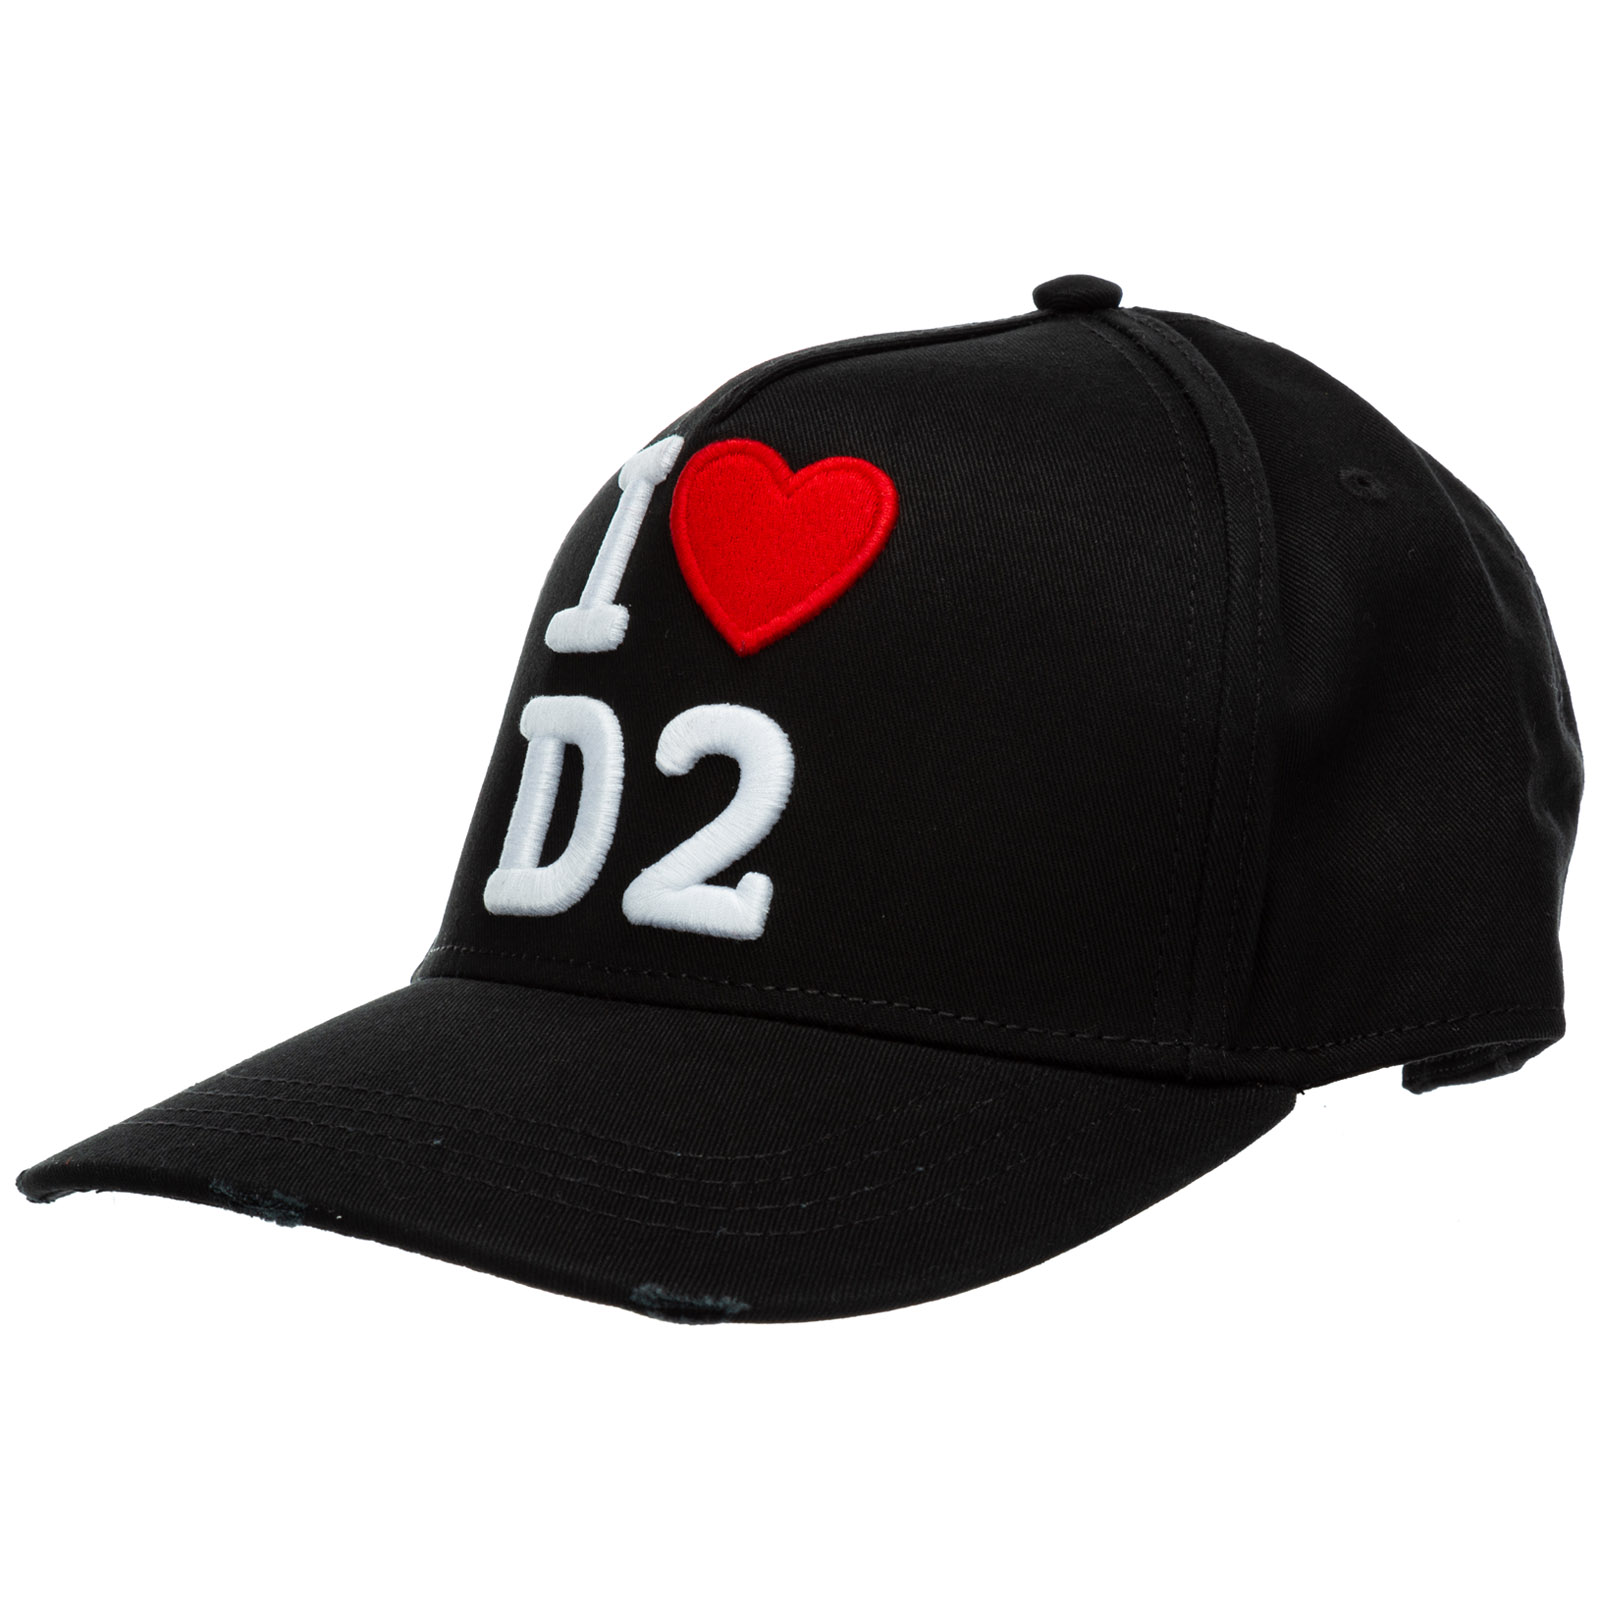 Dsquared2 Caps ADJUSTABLE MEN'S COTTON HAT BASEBALL CAP BASEBALL I LOVE D2